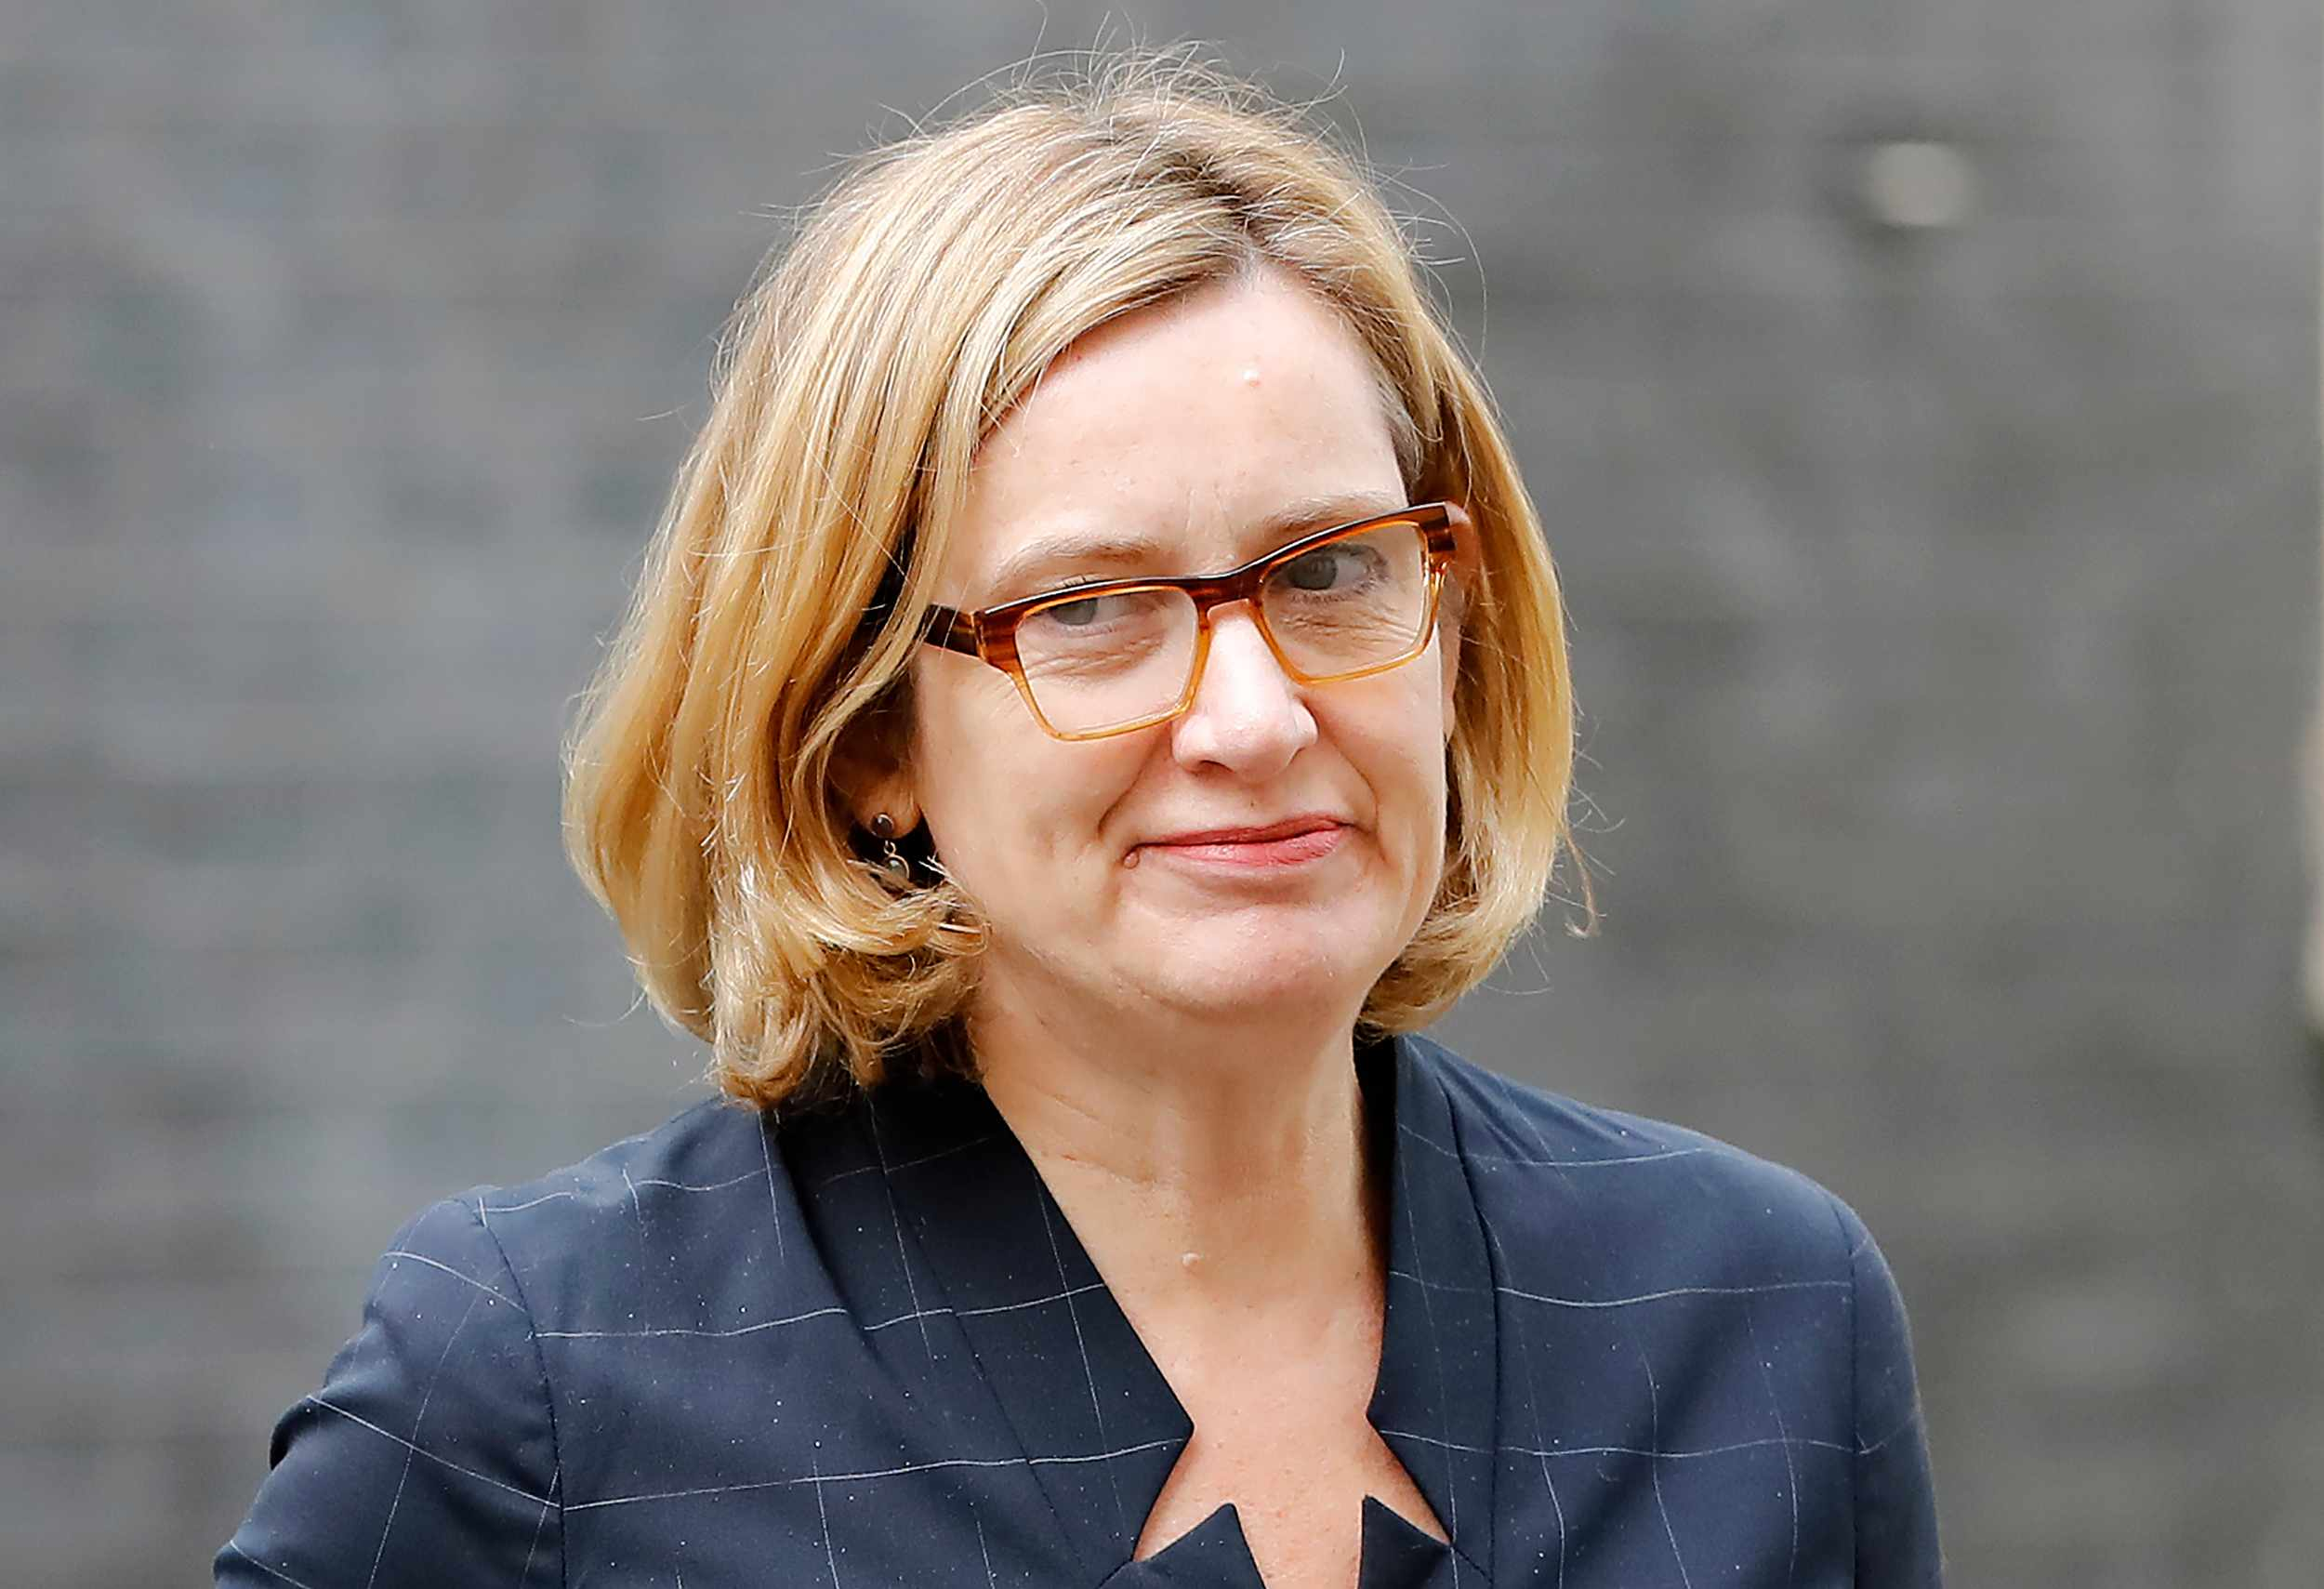 Britain's Home Secretary Amber Rudd arrives at 10 Downing Street in central London on April 25, 2018. (Photo by Tolga AKMEN / AFP)        (Photo credit should read TOLGA AKMEN/AFP/Getty Images)